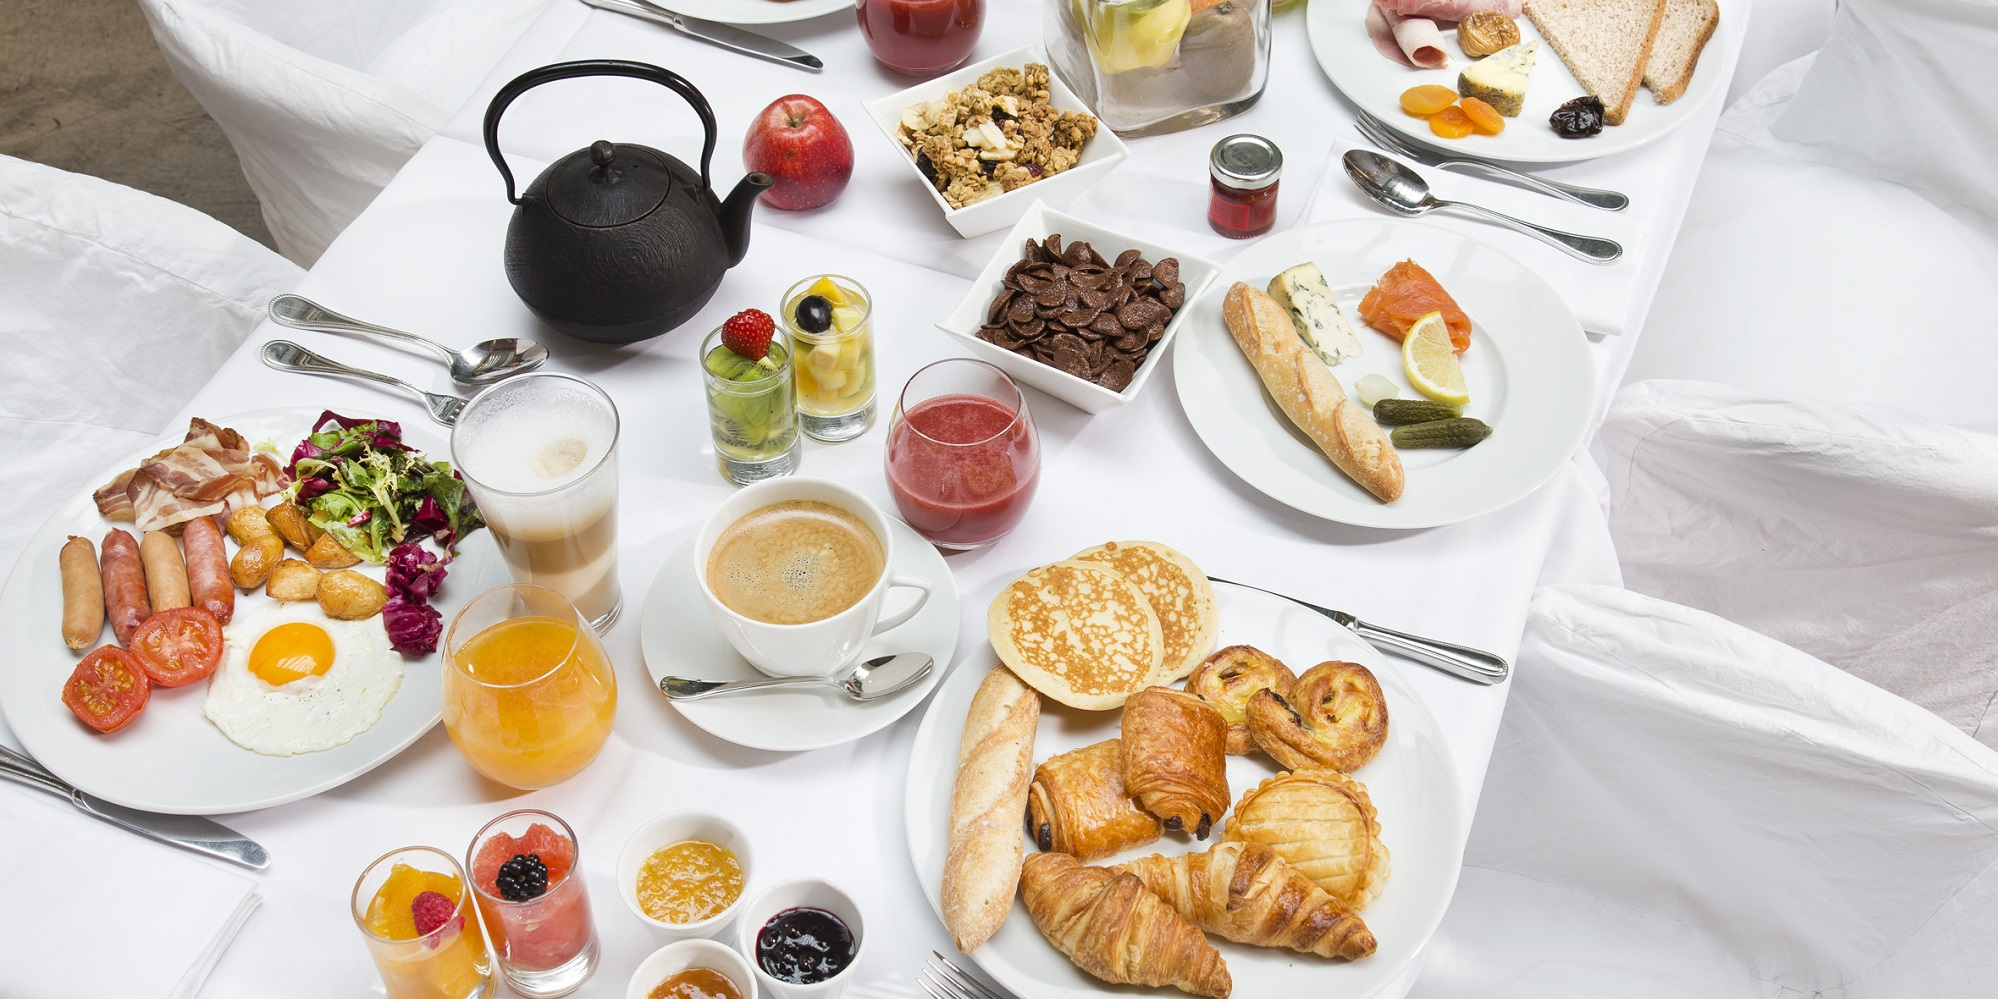 Brunch La Table du huit (75008 Paris)